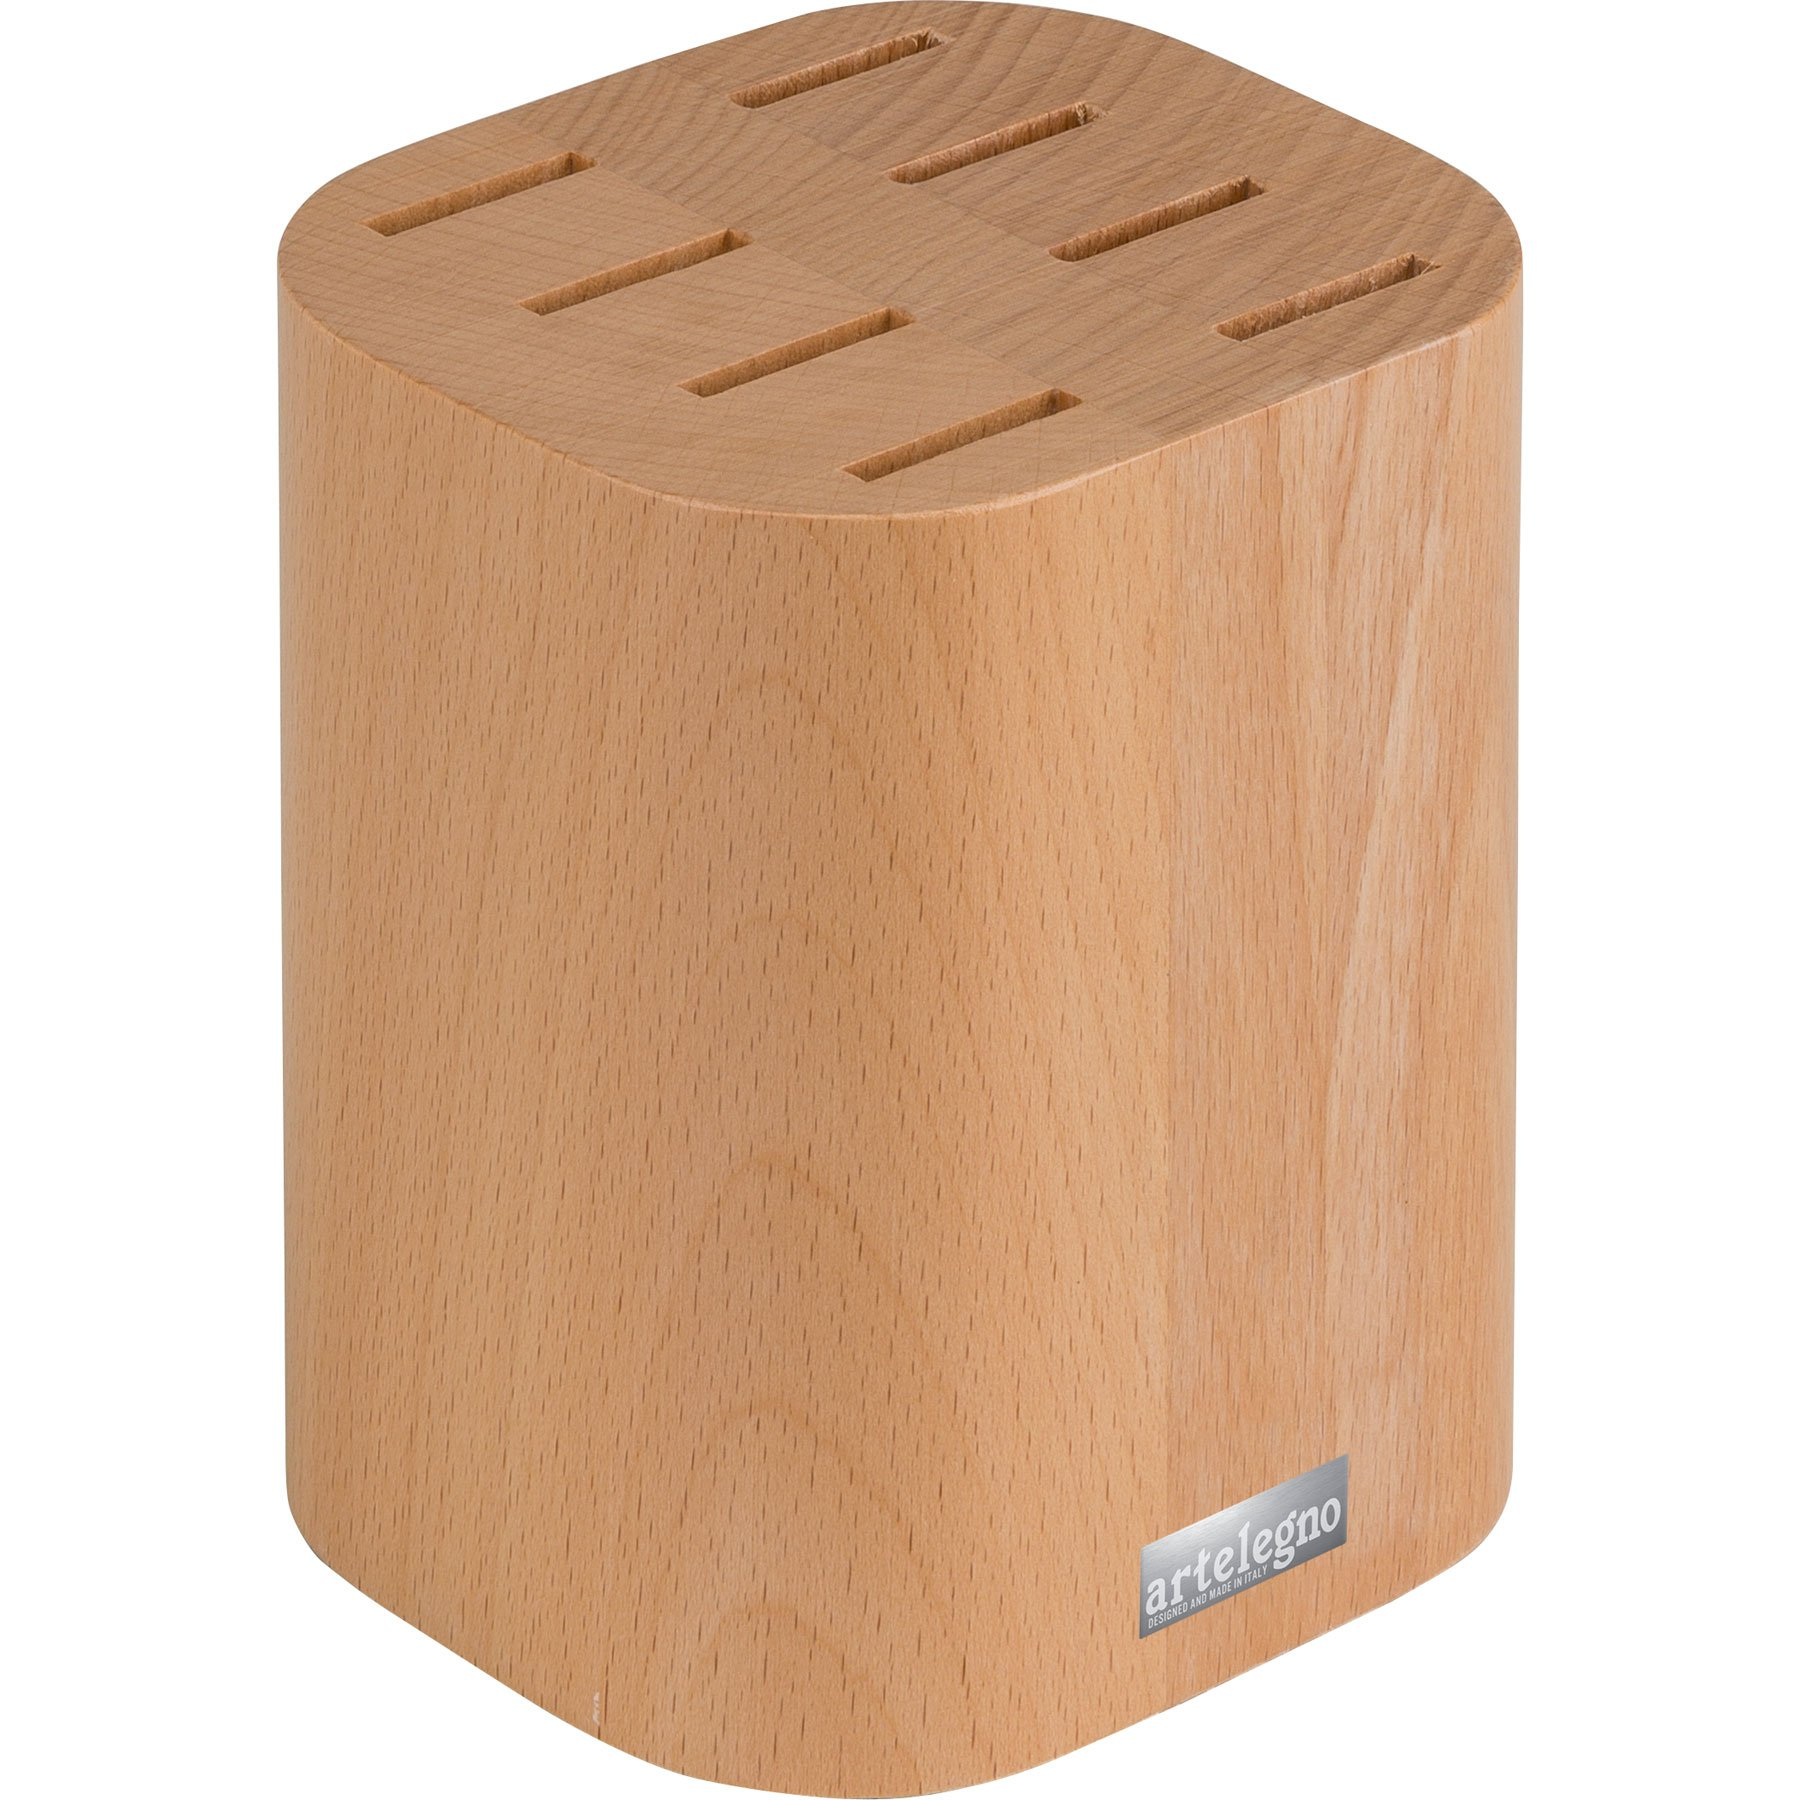 Artelegno 16 8-Piece Steak Knife Block, Solid Beech Wood Natural Lacquer Finish